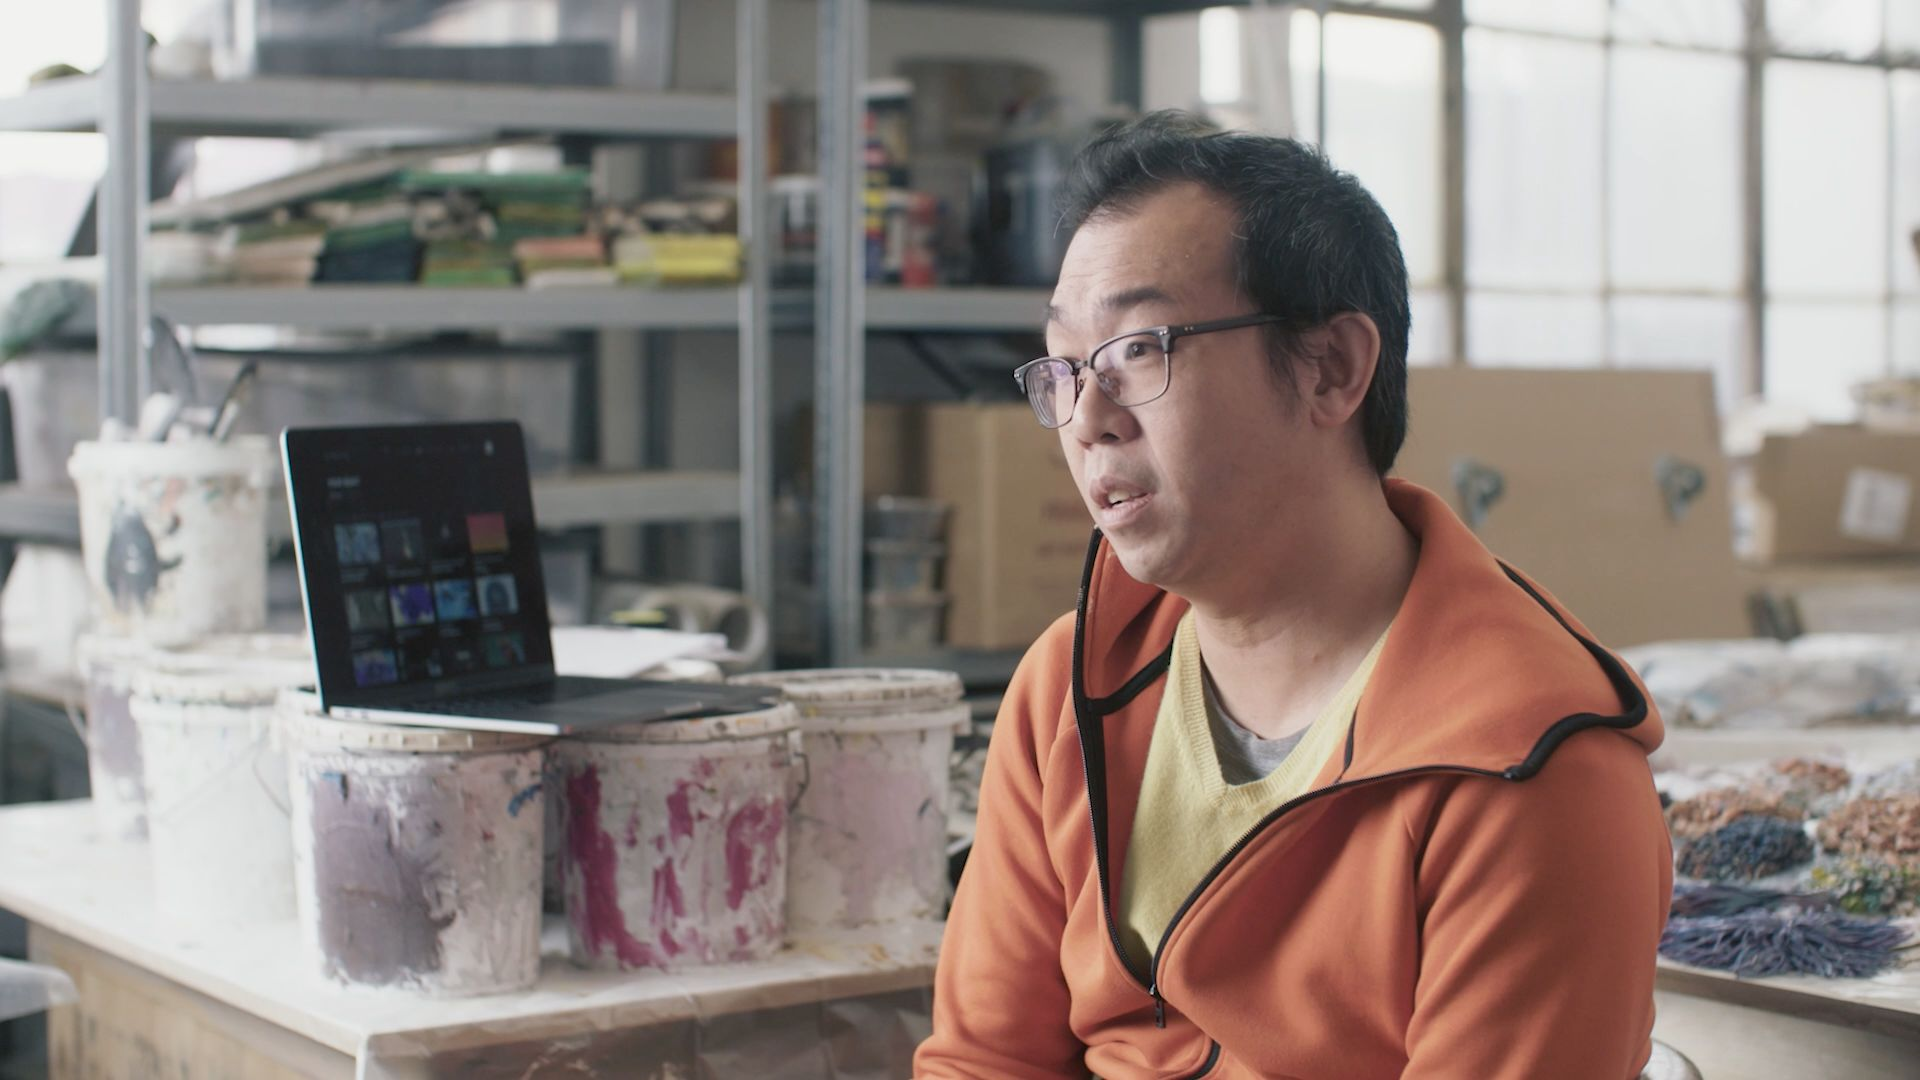 New Welcome video featuring artist Gordon Cheung and New Mobile Features